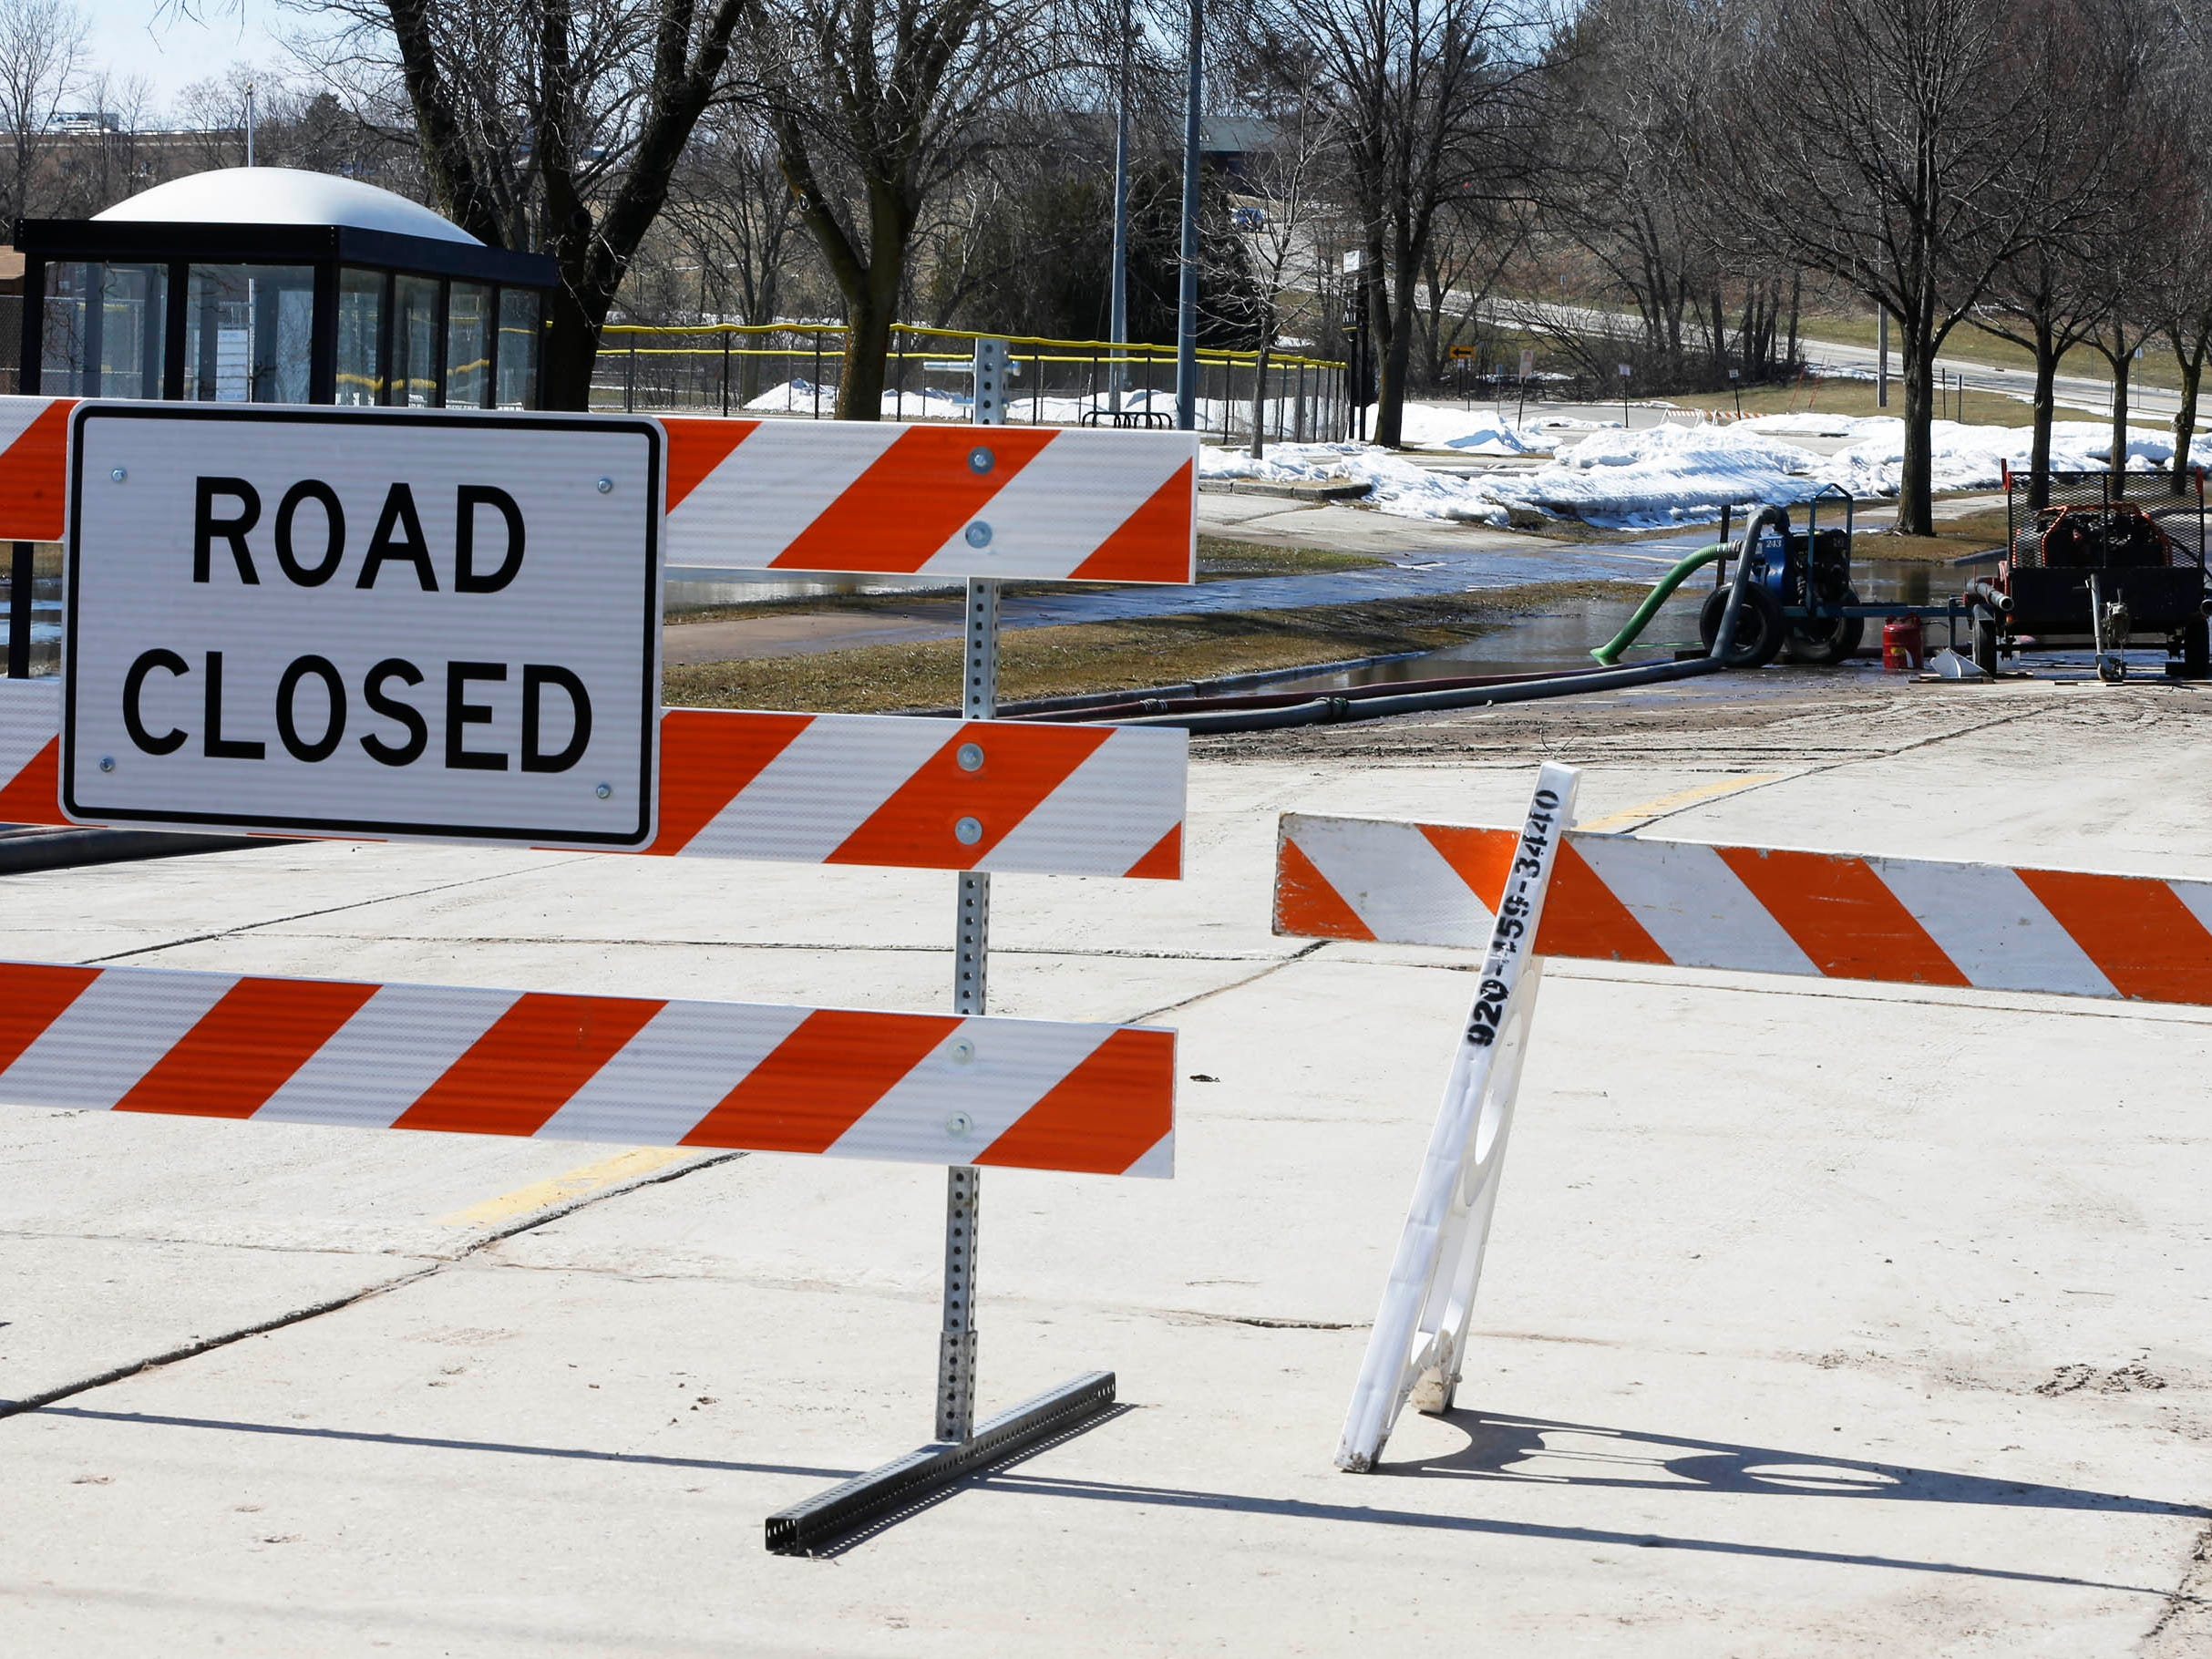 A section of New Jersey Avenue is closed to traffic while pumps work to remedy flooding on the street, Tuesday, March 19, 2019, in Sheboygan, Wis.